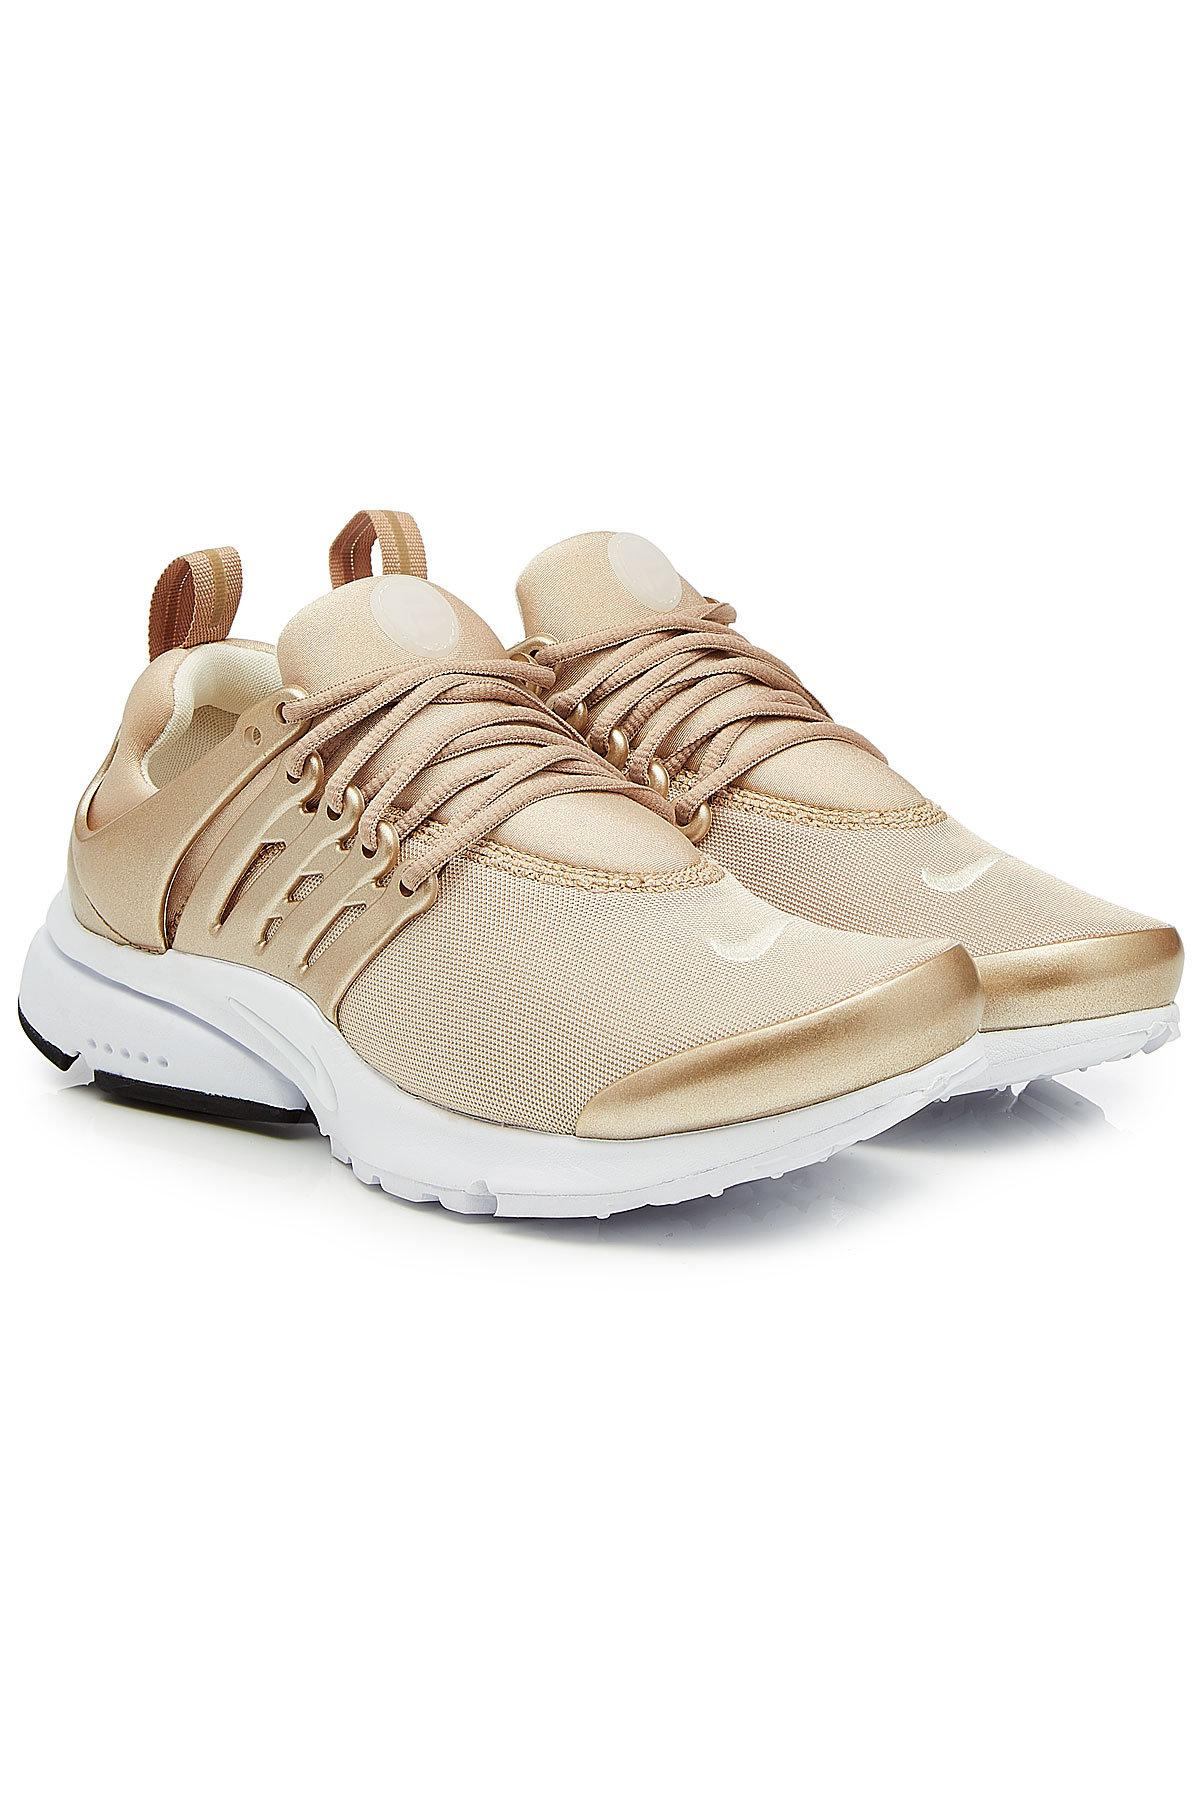 3b02249f4a88 ... sale lyst nike air presto sneakers with metallic detail in metallic  95ad5 7bbc5